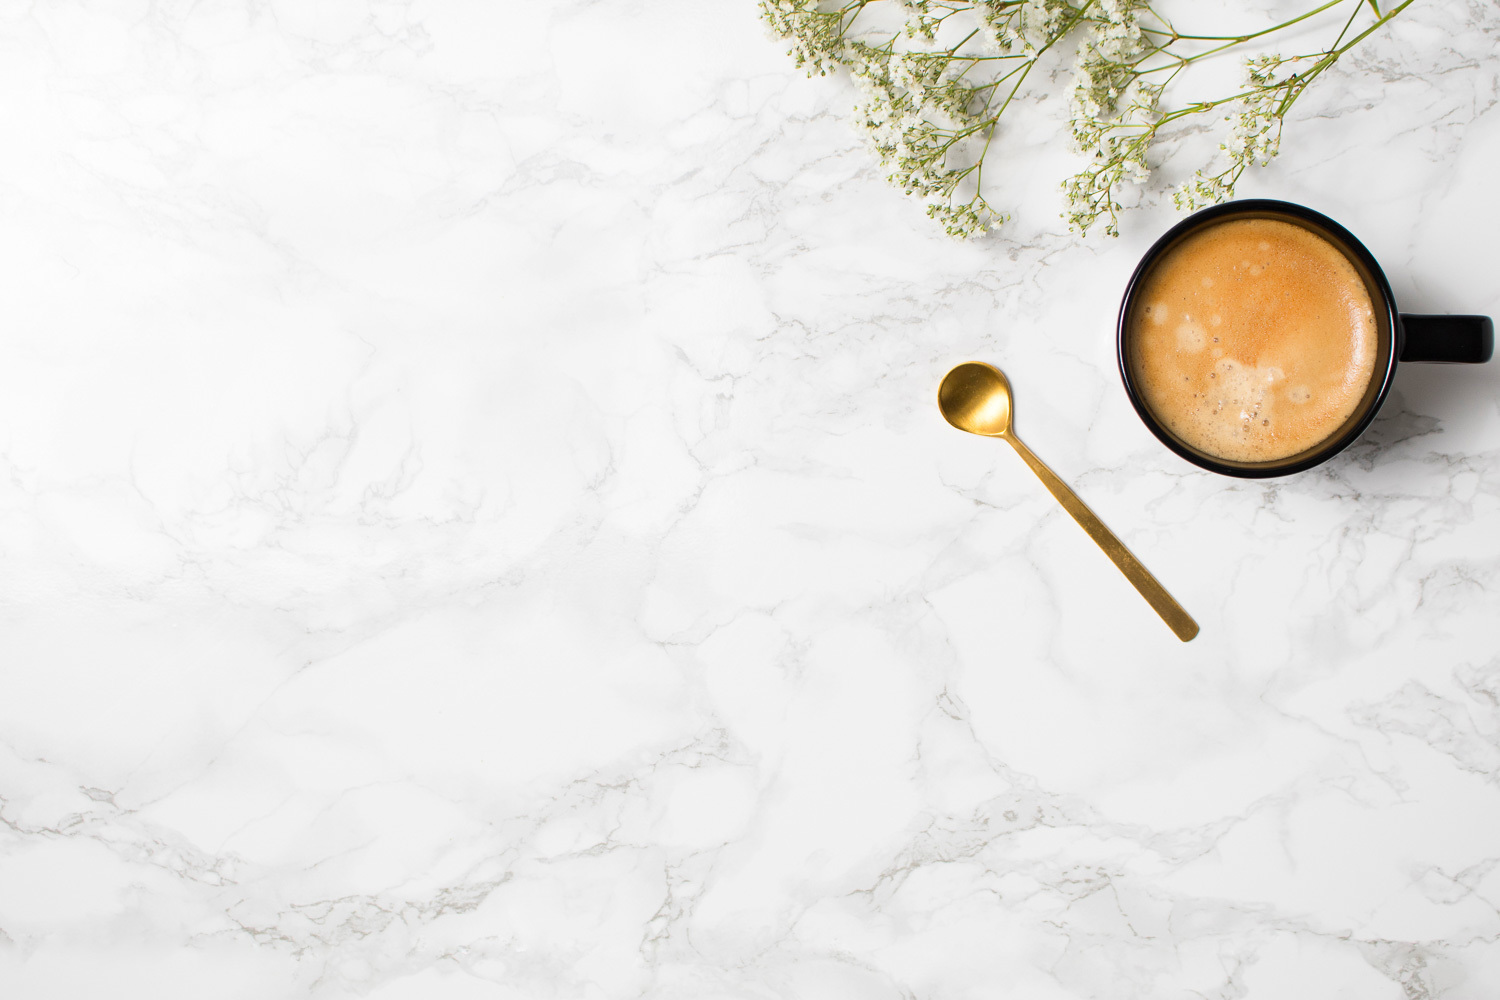 Top view of a black coffee mug, a golden spoon and baby's breath flowers on a white marble background - by The Product Stylist